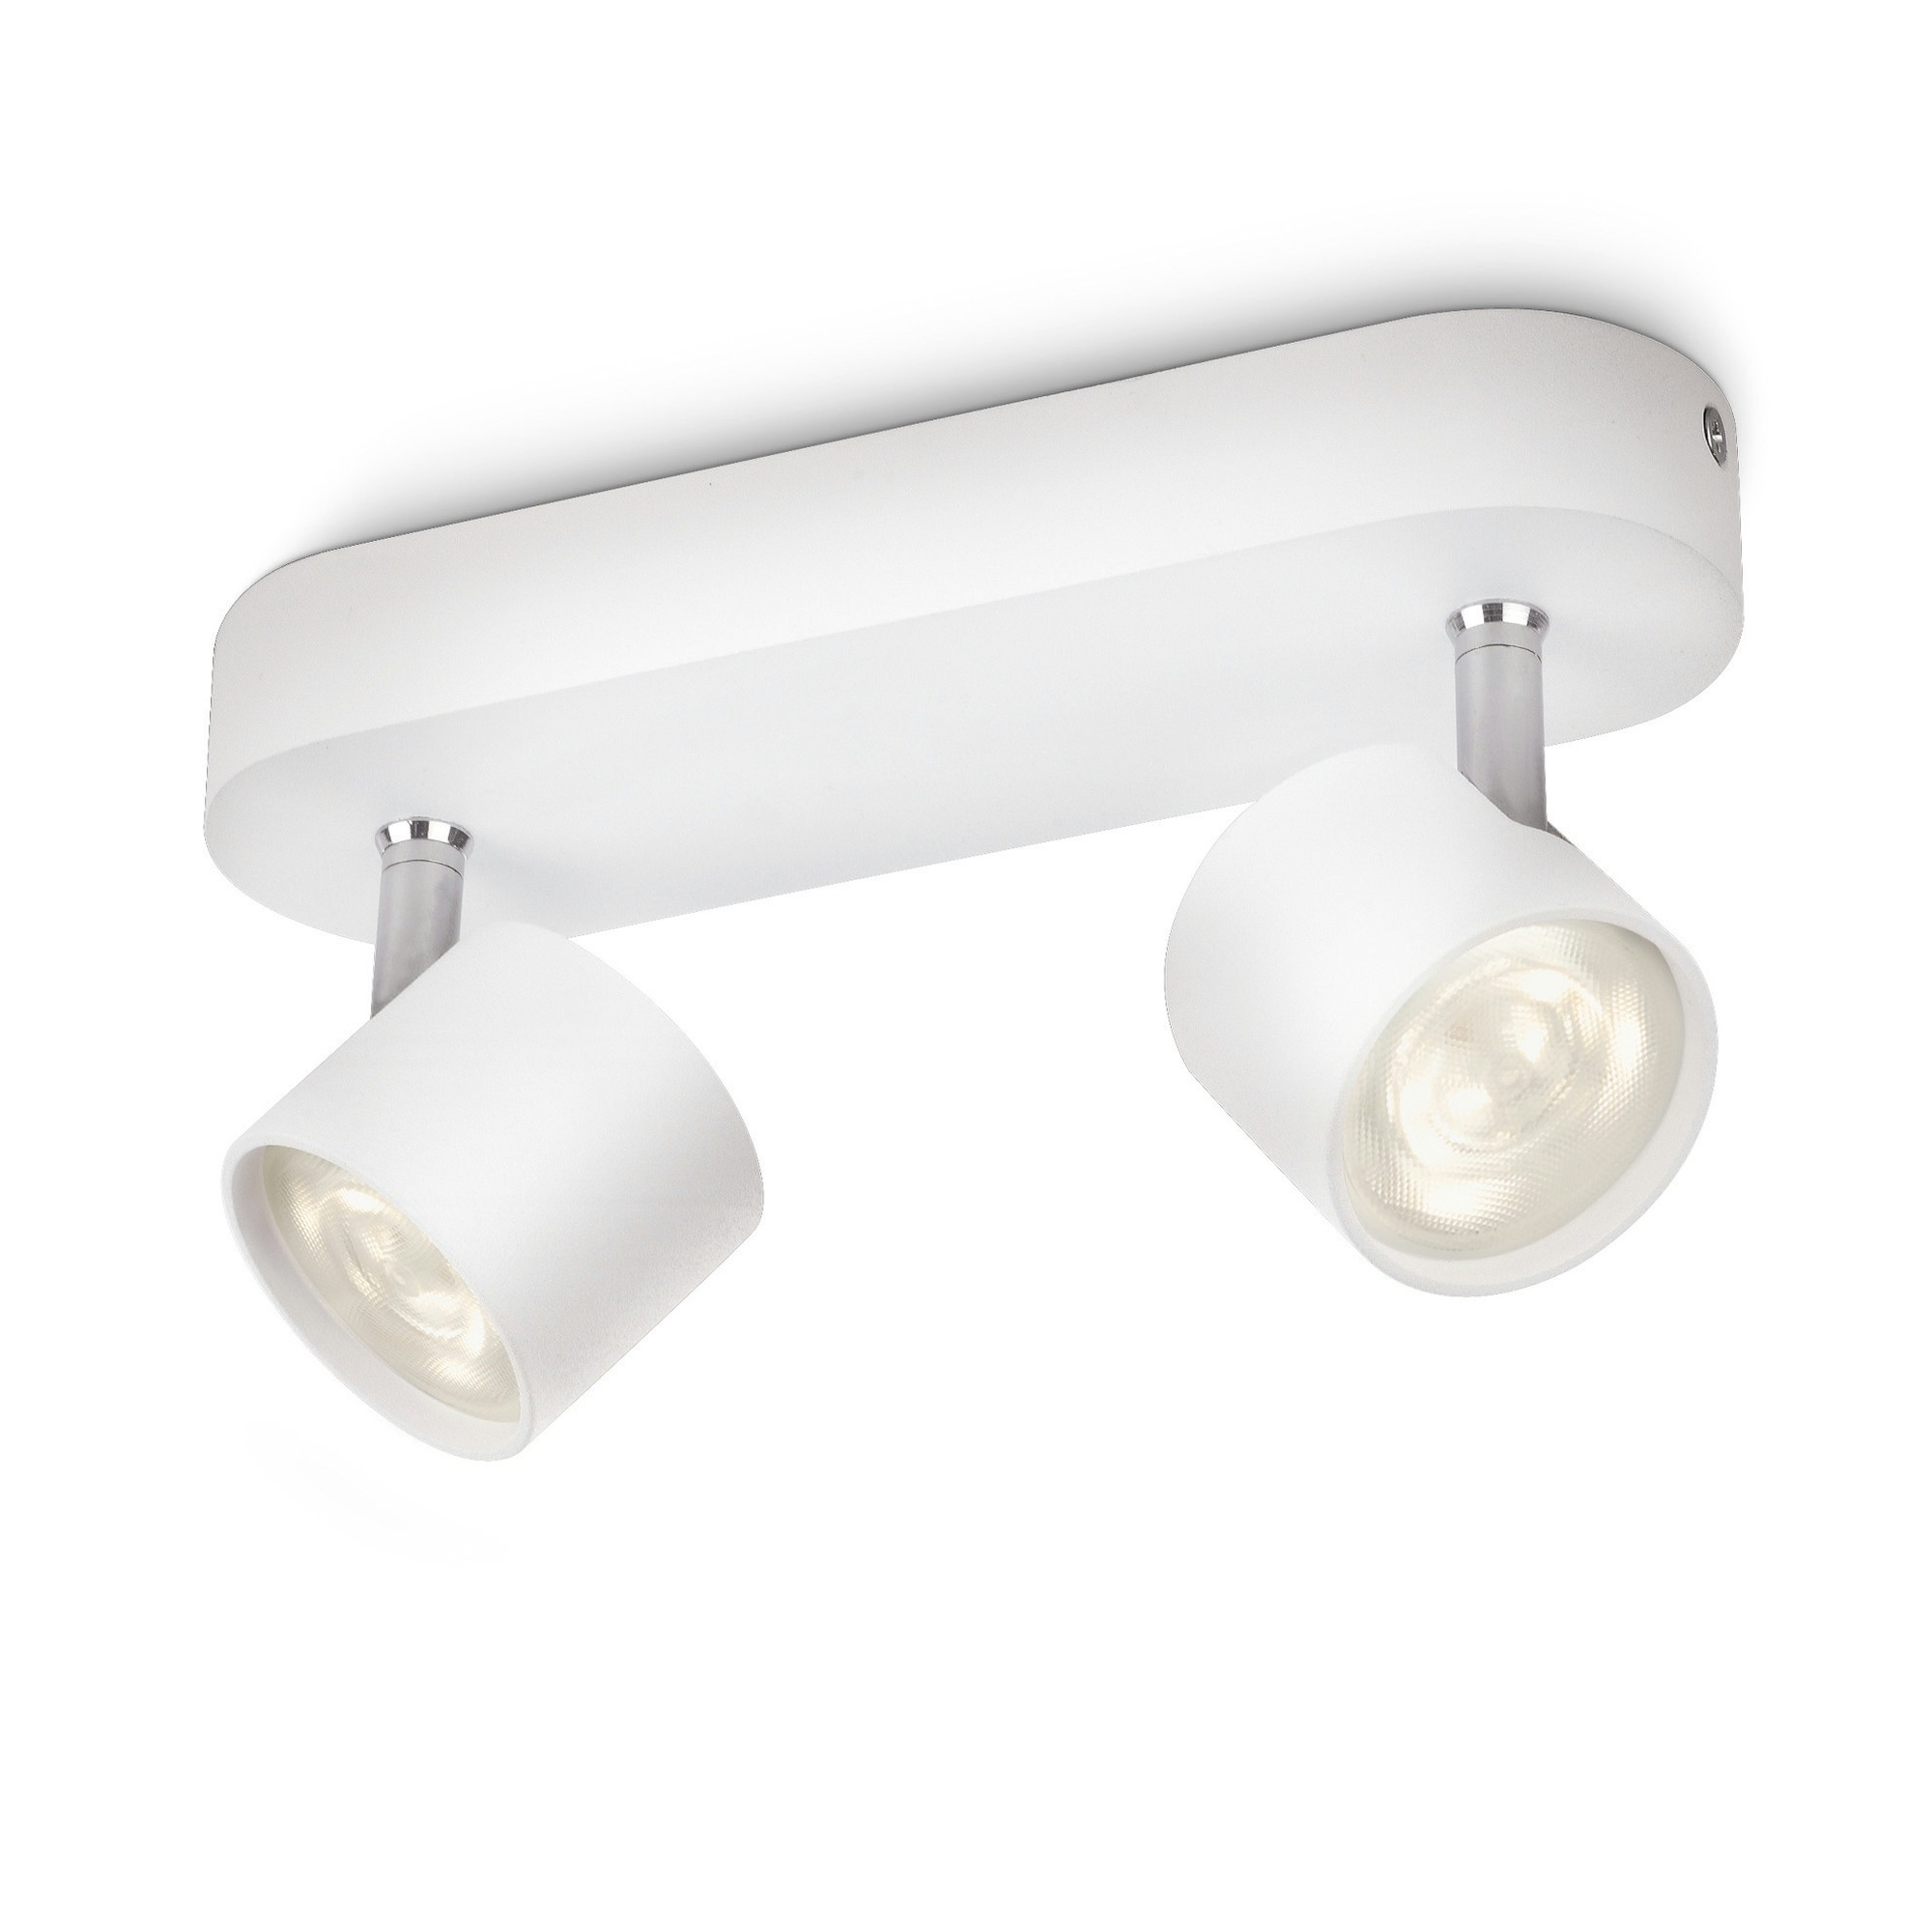 Philips myliving star spotlamp safety extra low 2 x 4 w wit